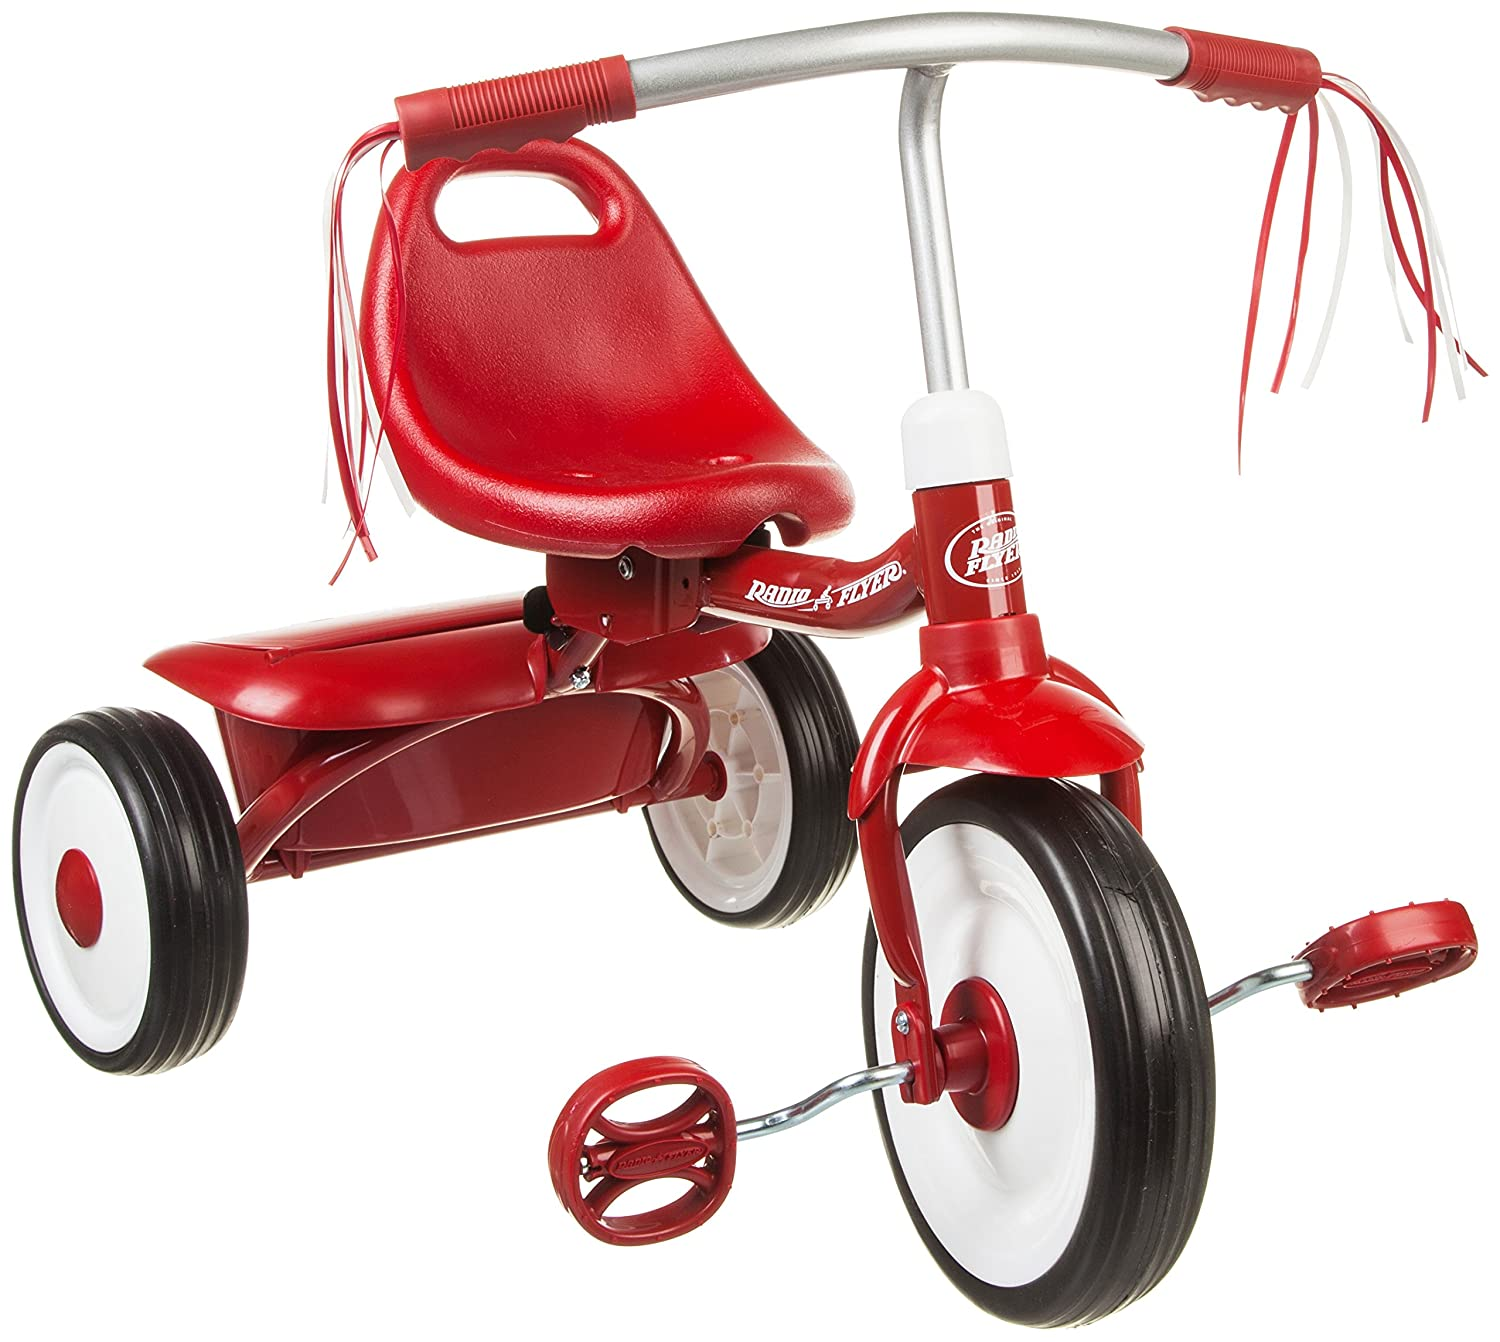 10 Best Tricycles For Toddlers Ages 2 To 5 2018 2019 On Flipboard By Fisher Price Harley Davidson Ride Tough Trike Radio Flyer Fold Go